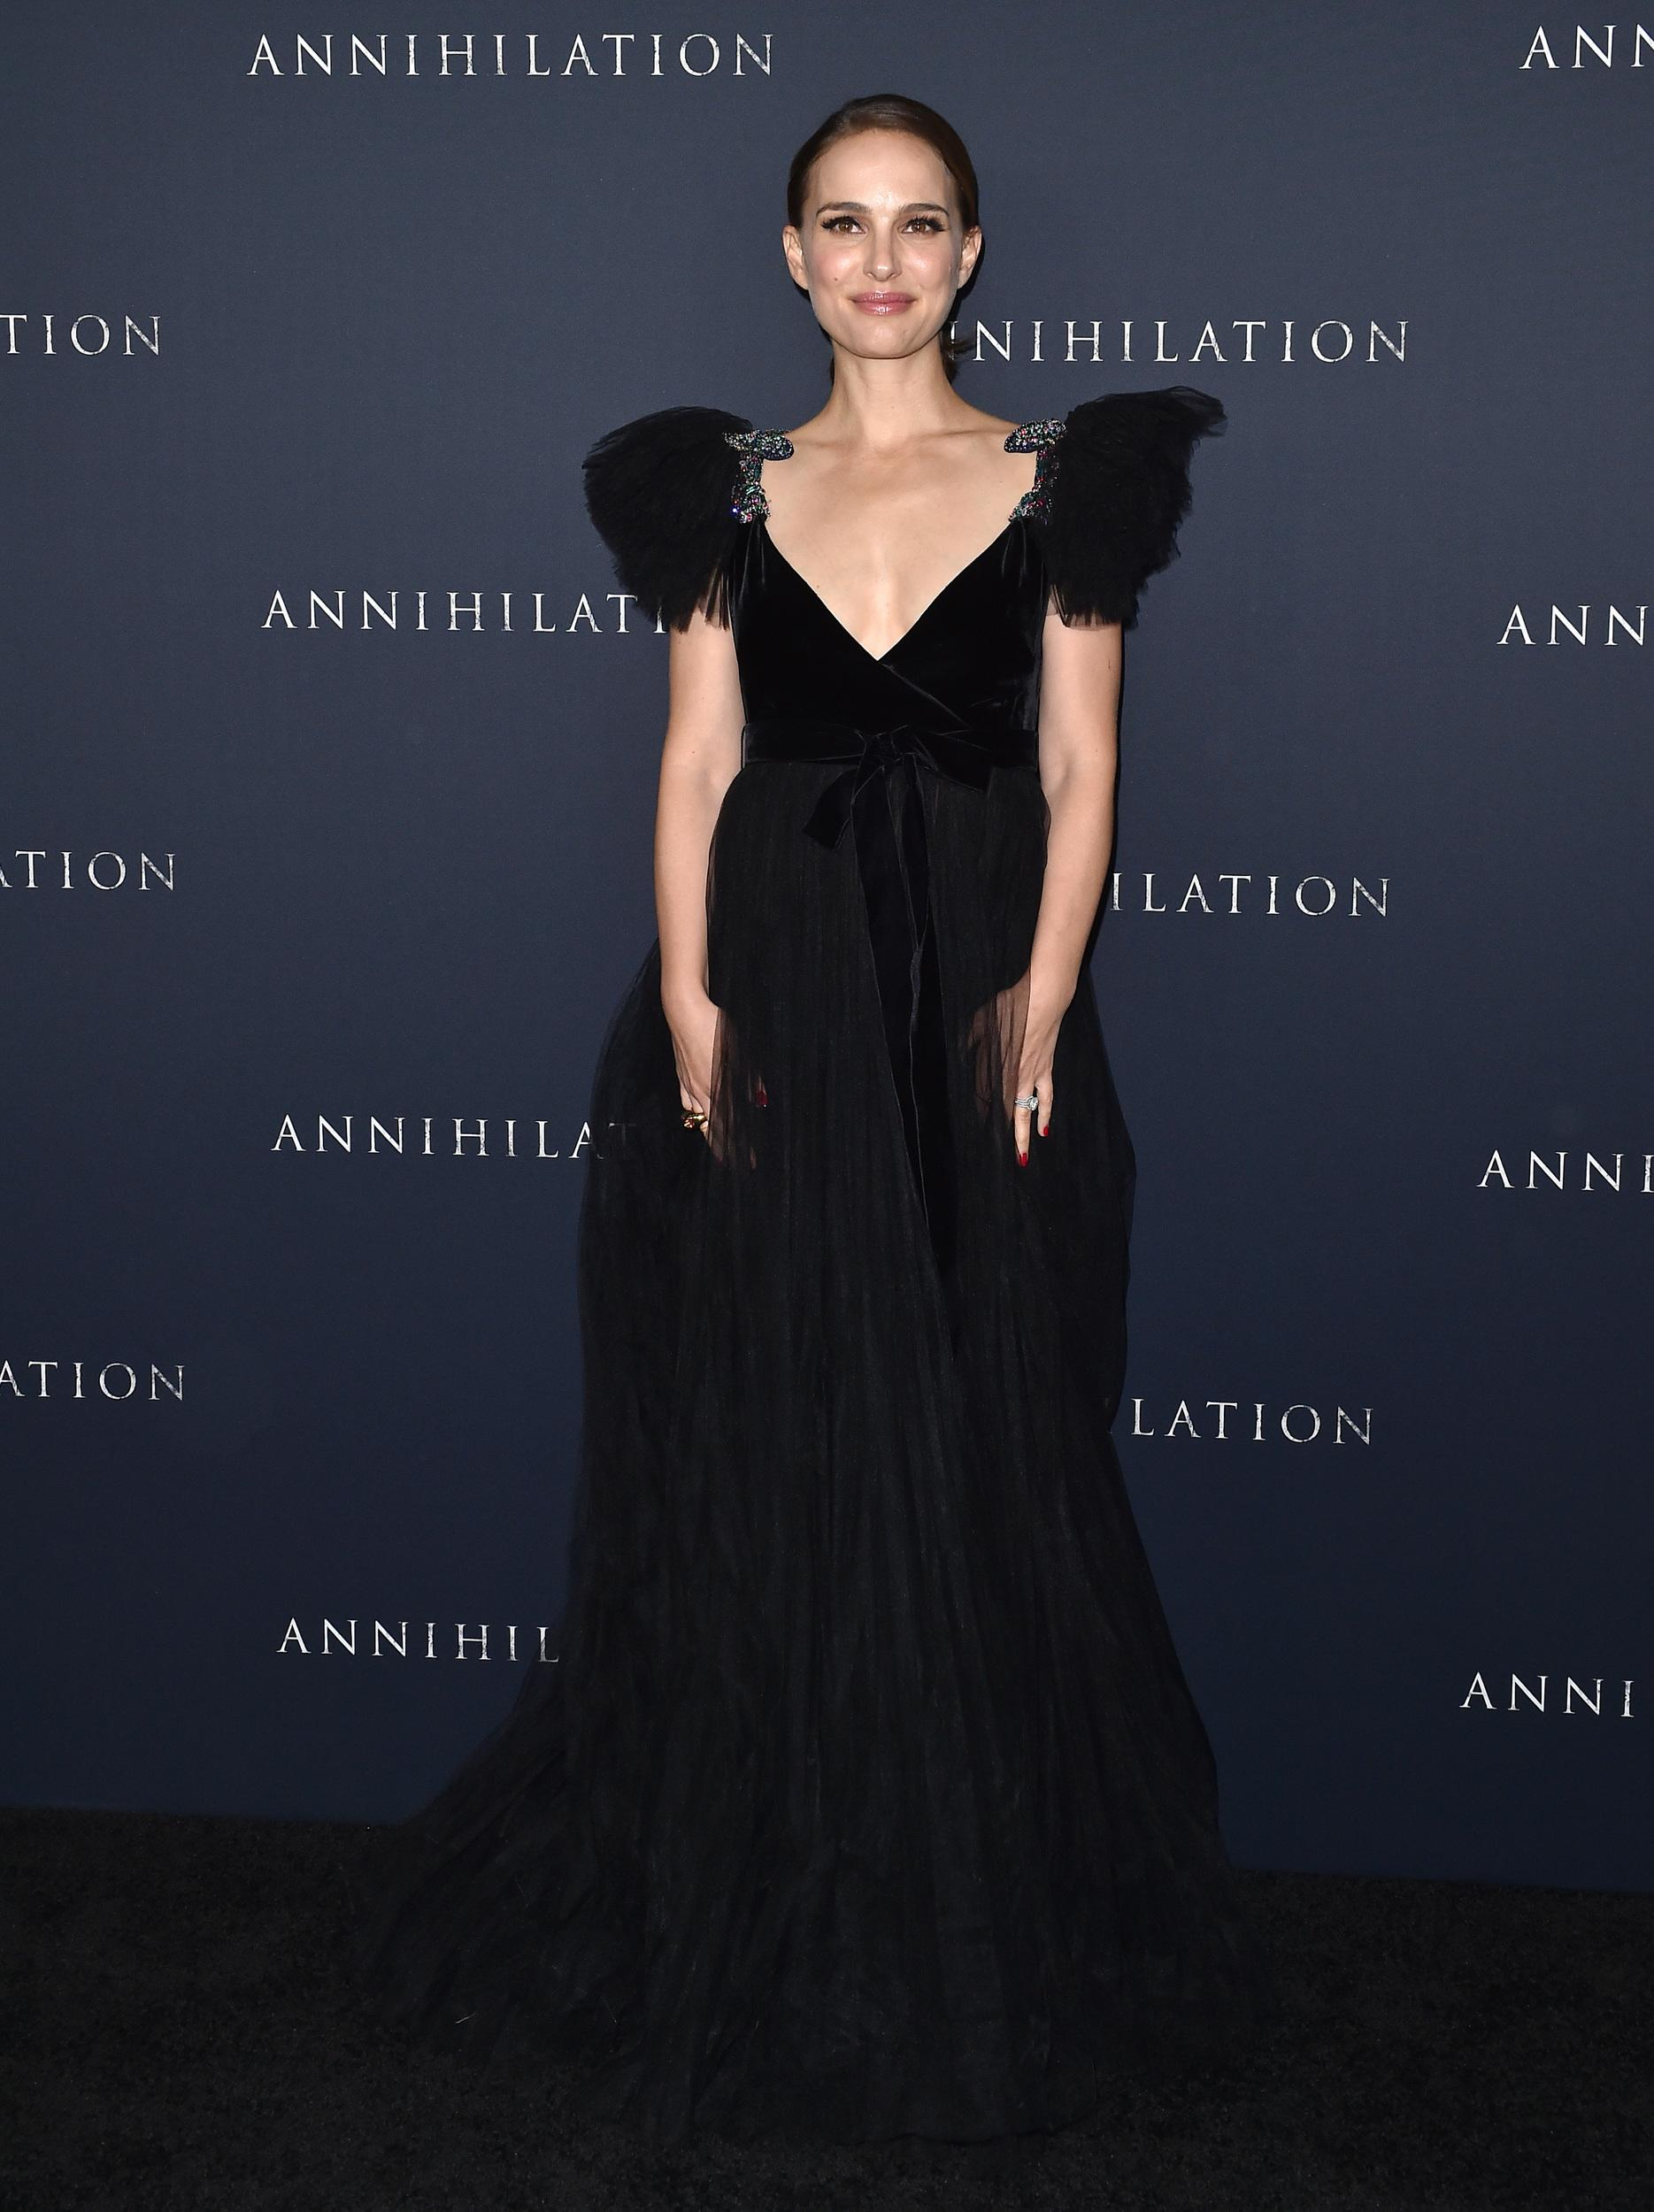 WESTWOOD, CA - FEBRUARY 13:  Actress Natalie Portman attends the Los Angeles premiere of 'Annihilation' at Regency Village Theatre on February 13, 2018 in Westwood, California.  (Photo by Axelle/Bauer-Griffin/FilmMagic)